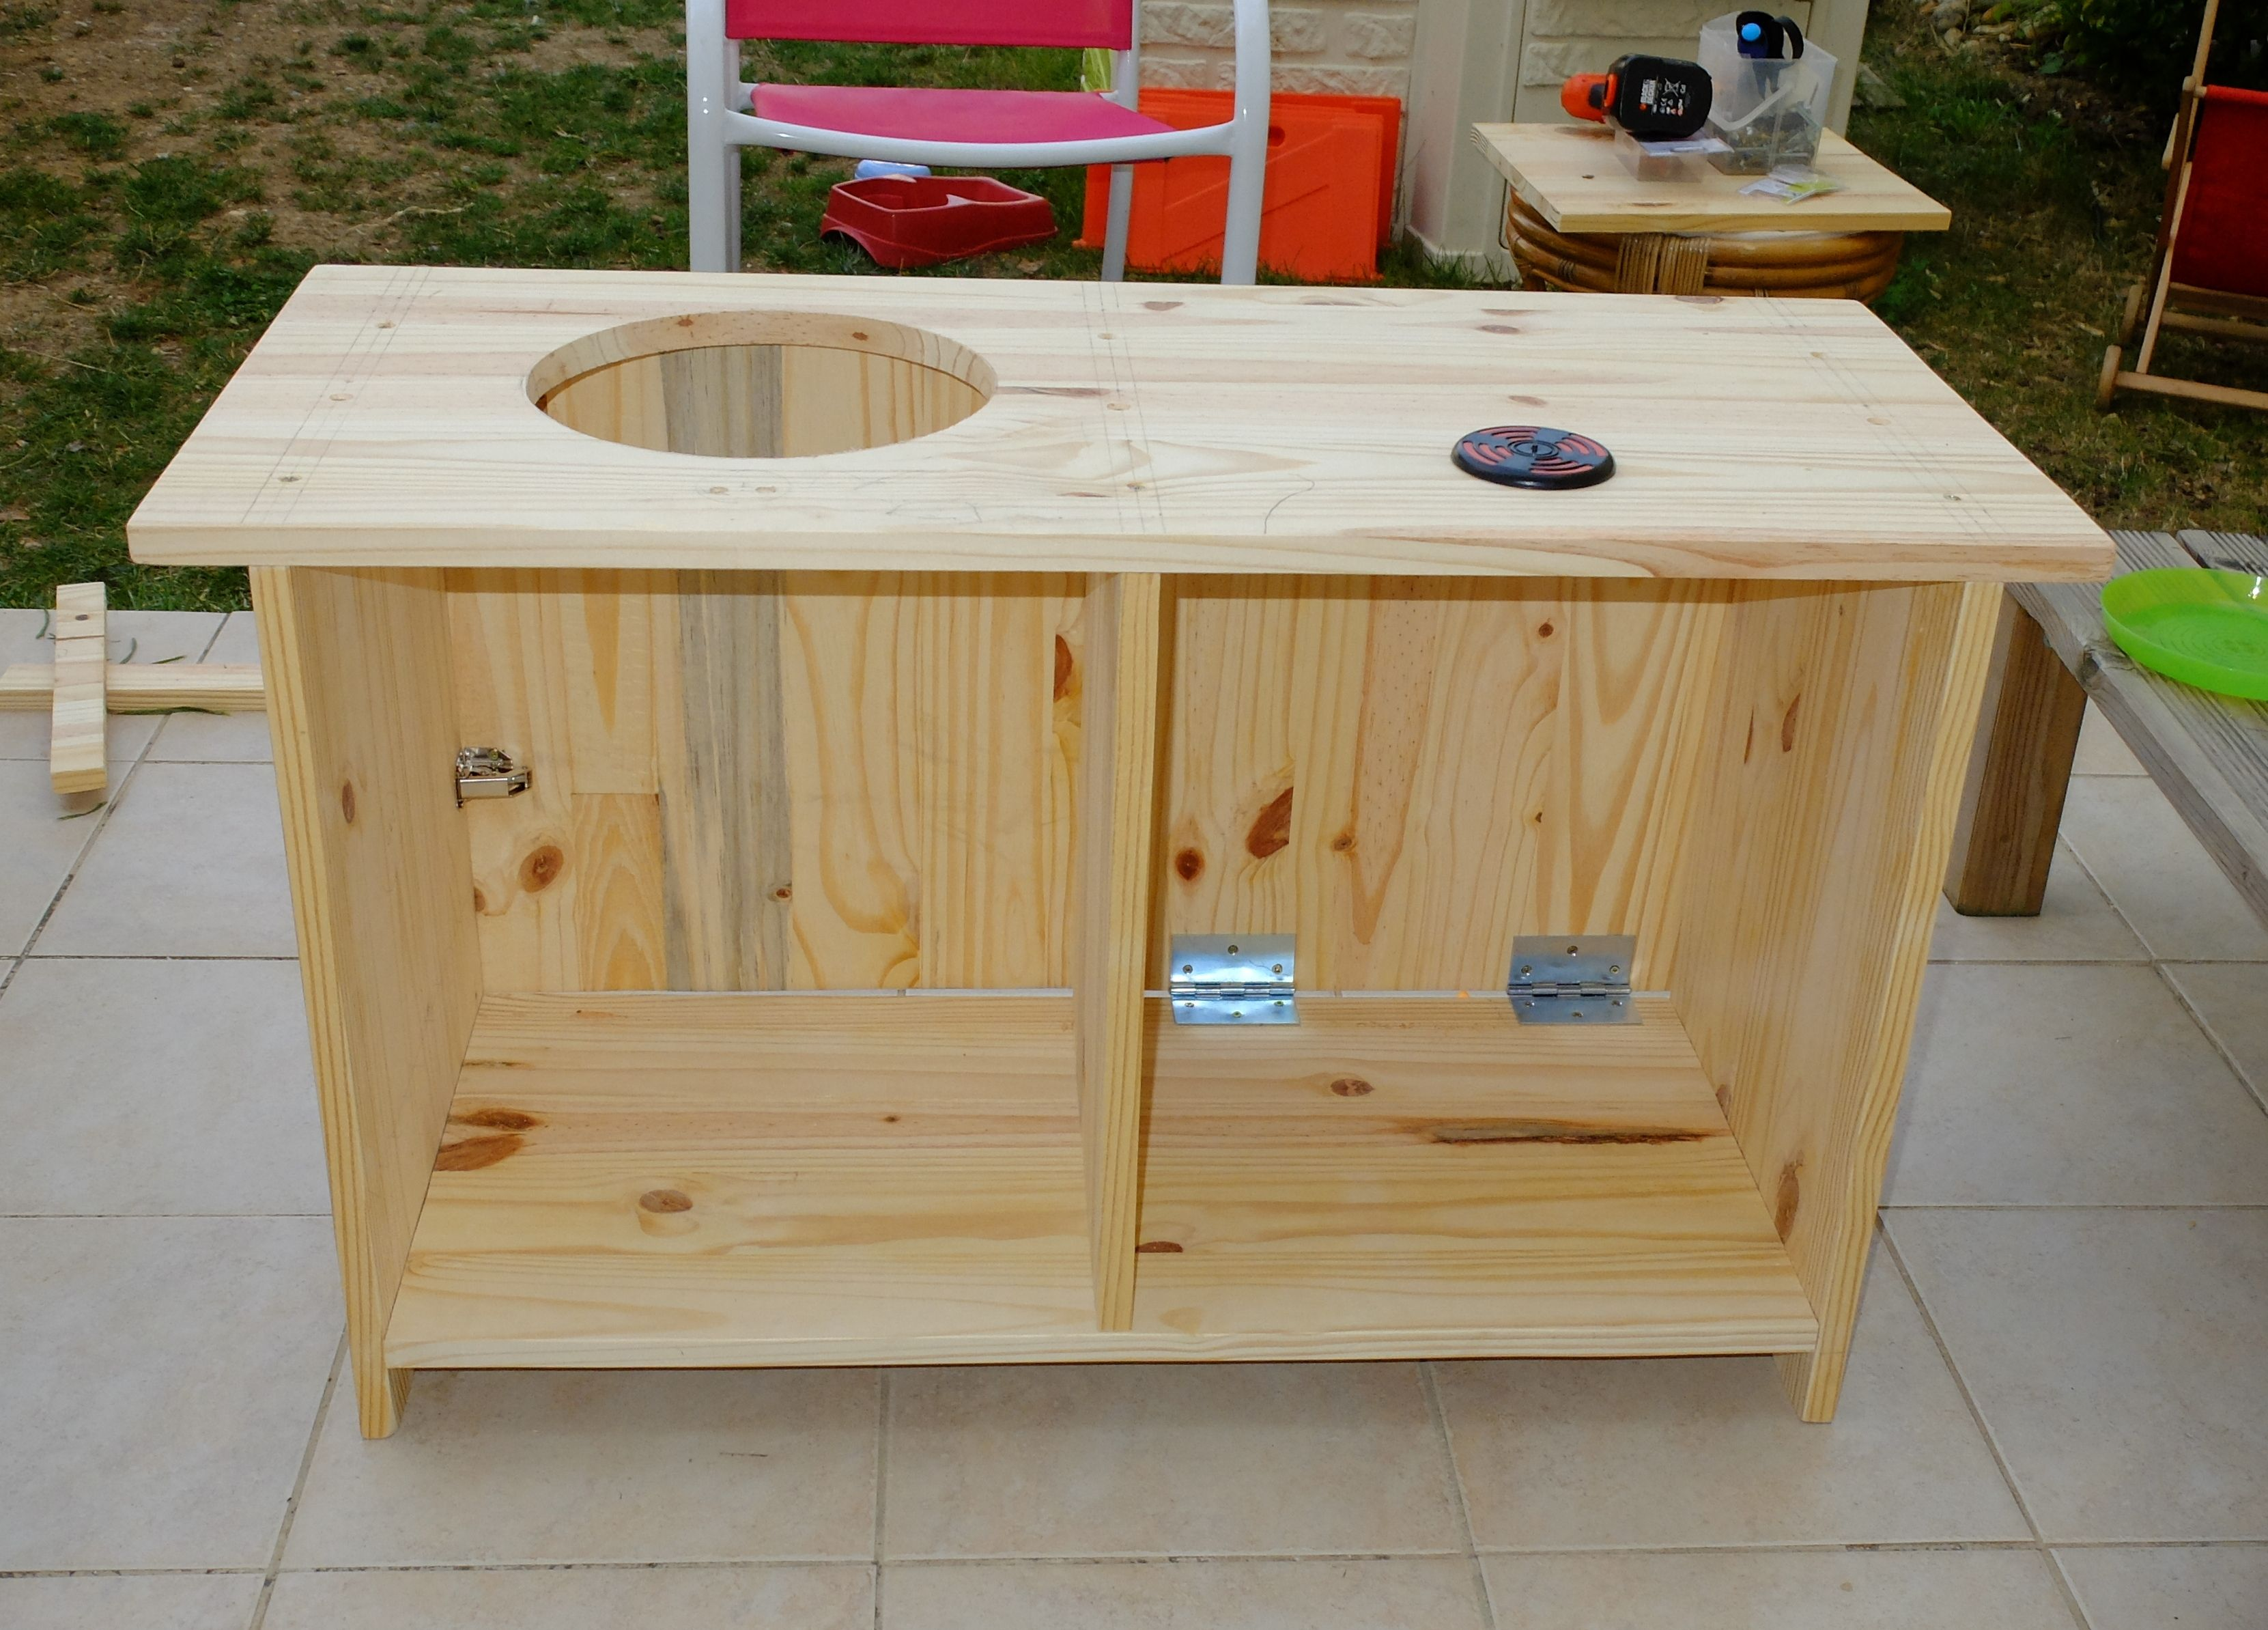 meuble cuisine pour enfants diy gaelle pinterest cuisine et bricolage. Black Bedroom Furniture Sets. Home Design Ideas